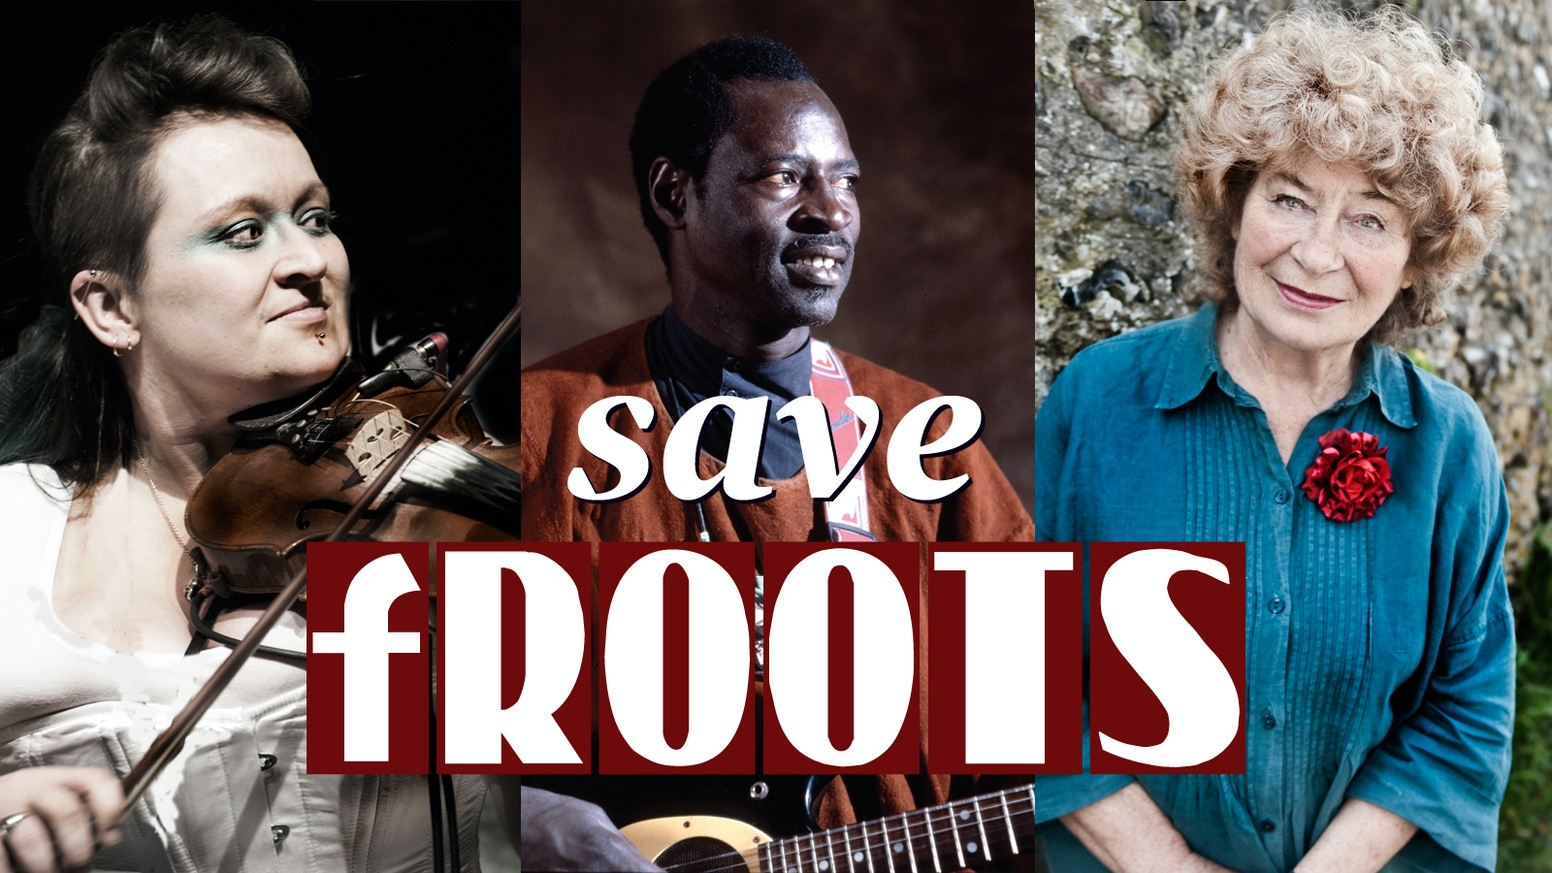 Save fRoots magazine